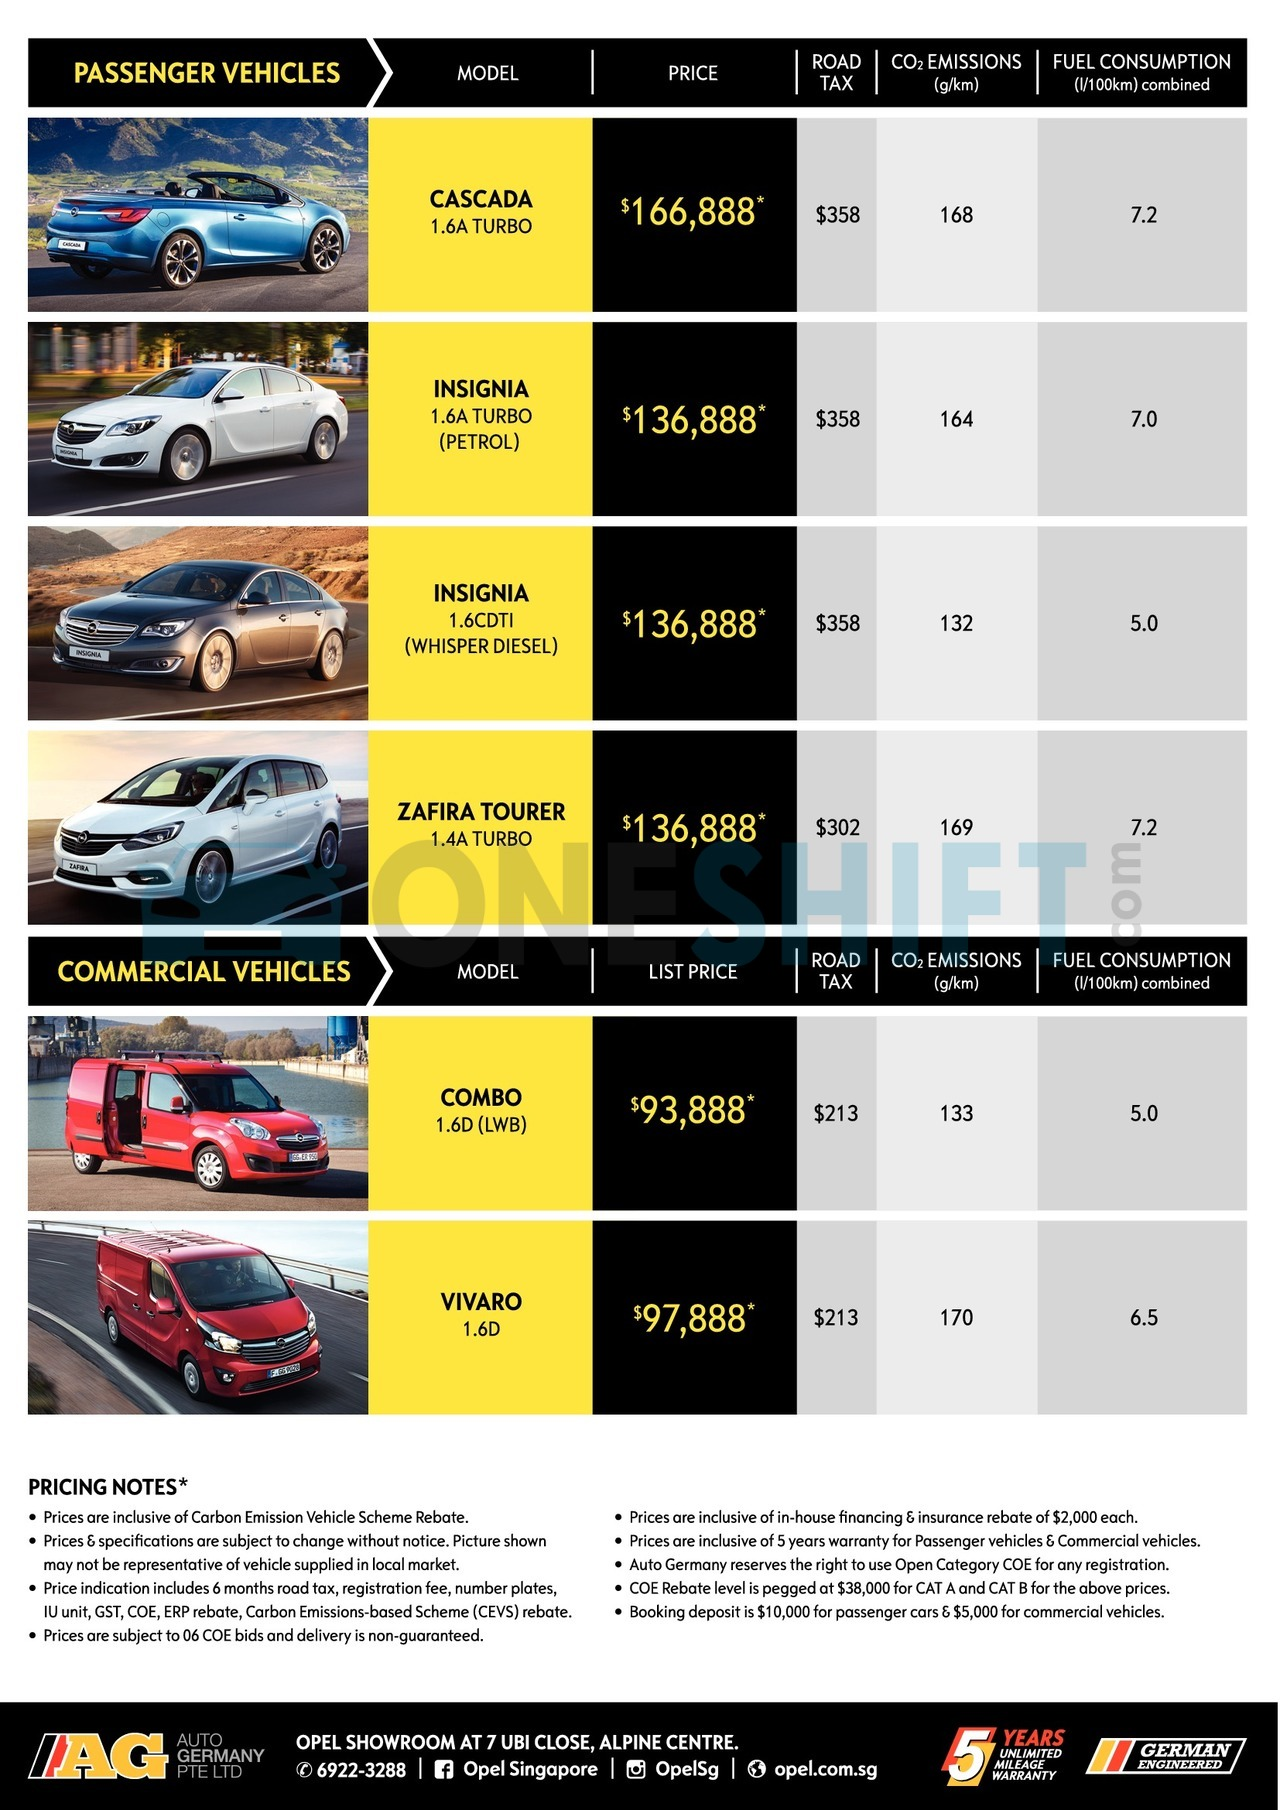 opel Price List 2-9-2017 Page 2